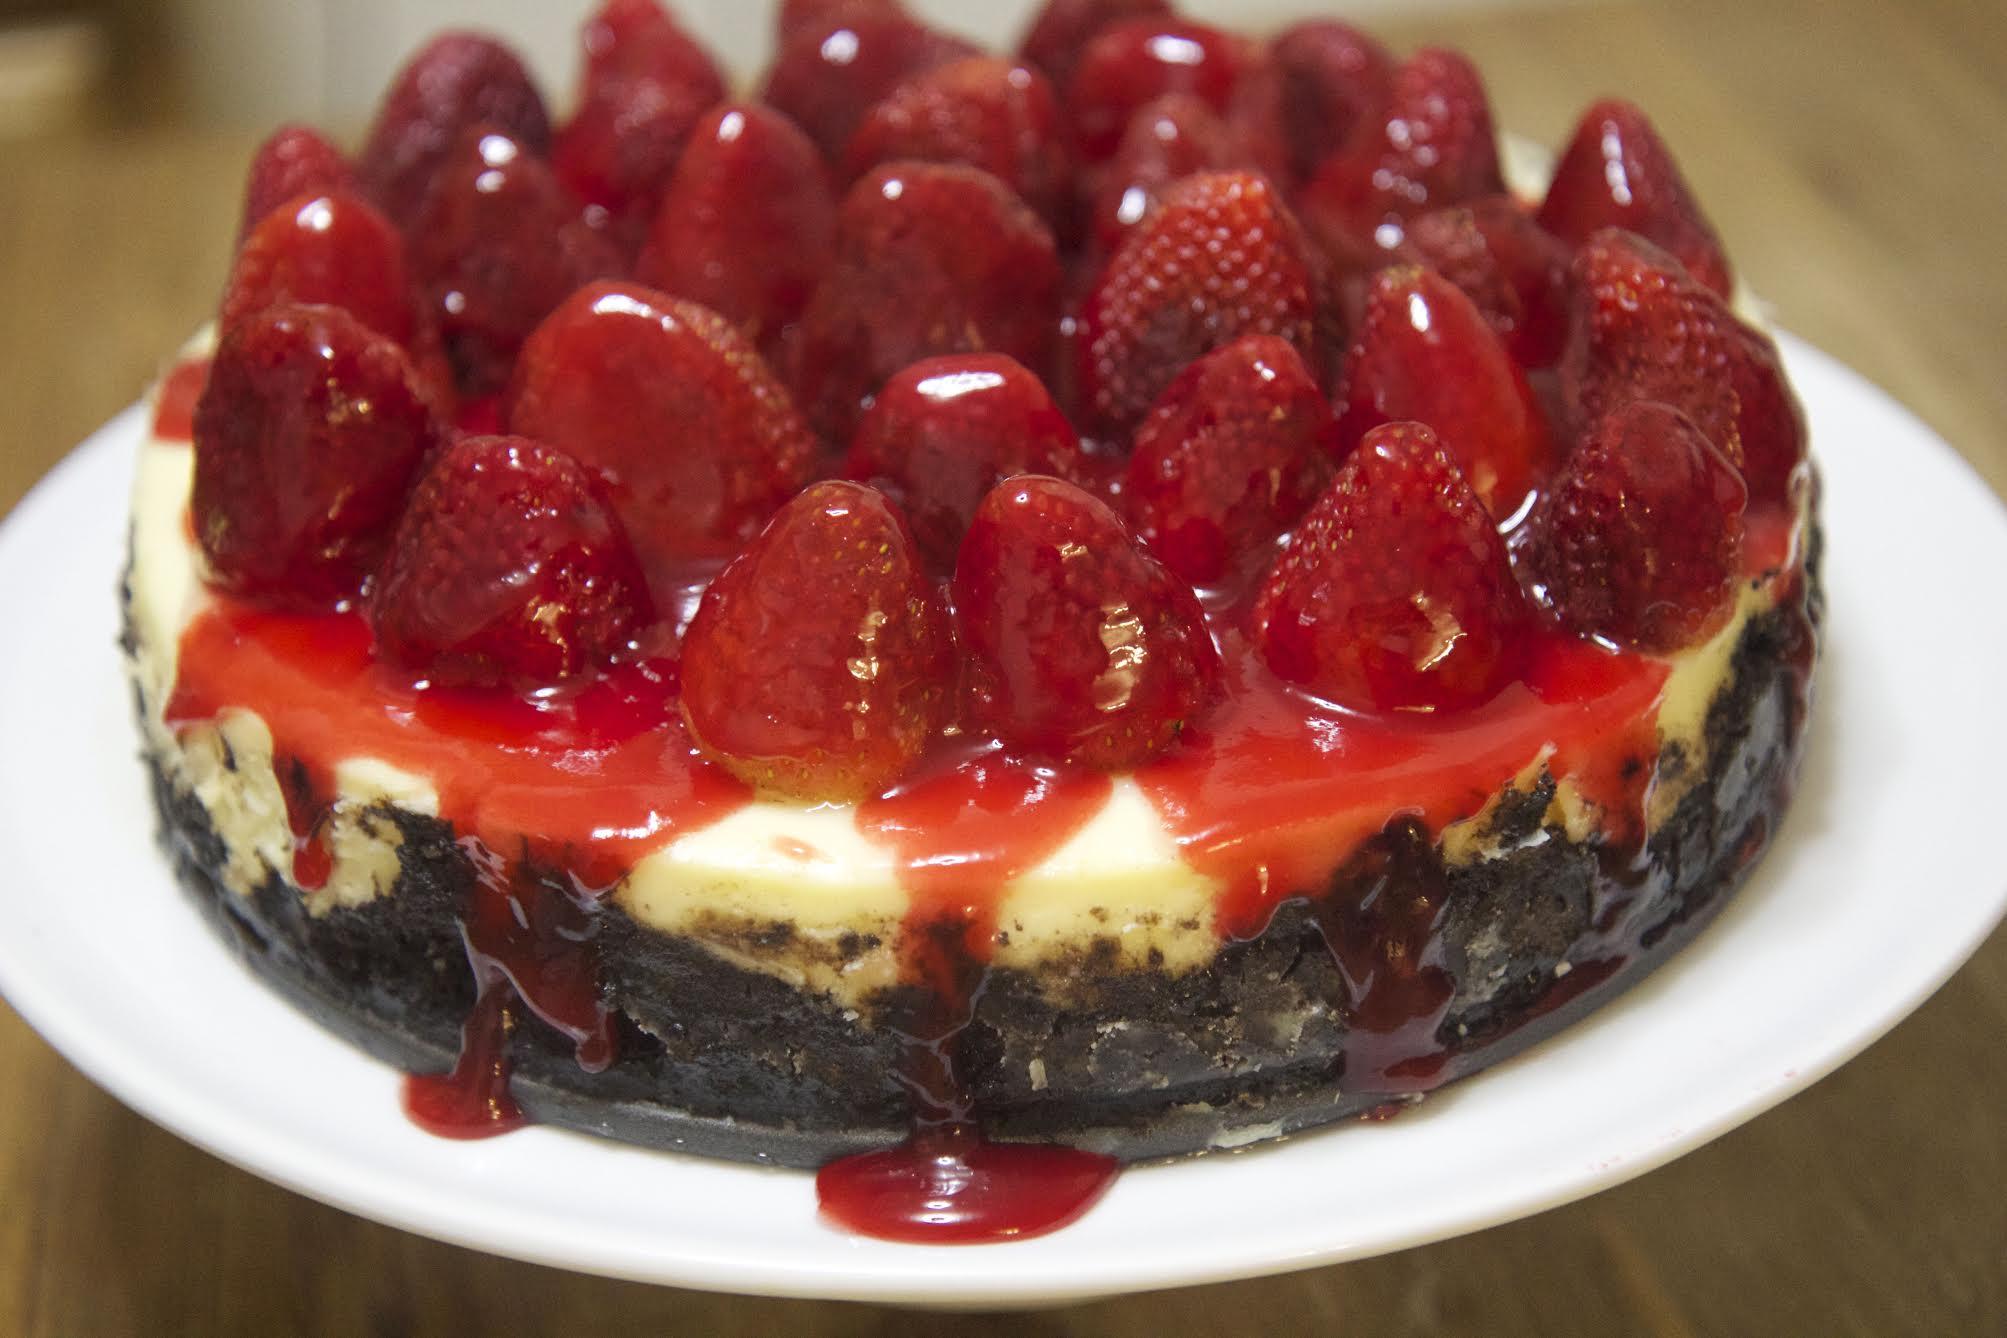 This homemade Oreo cheesecake is topped with fresh strawberries, making it the perfect dessert.